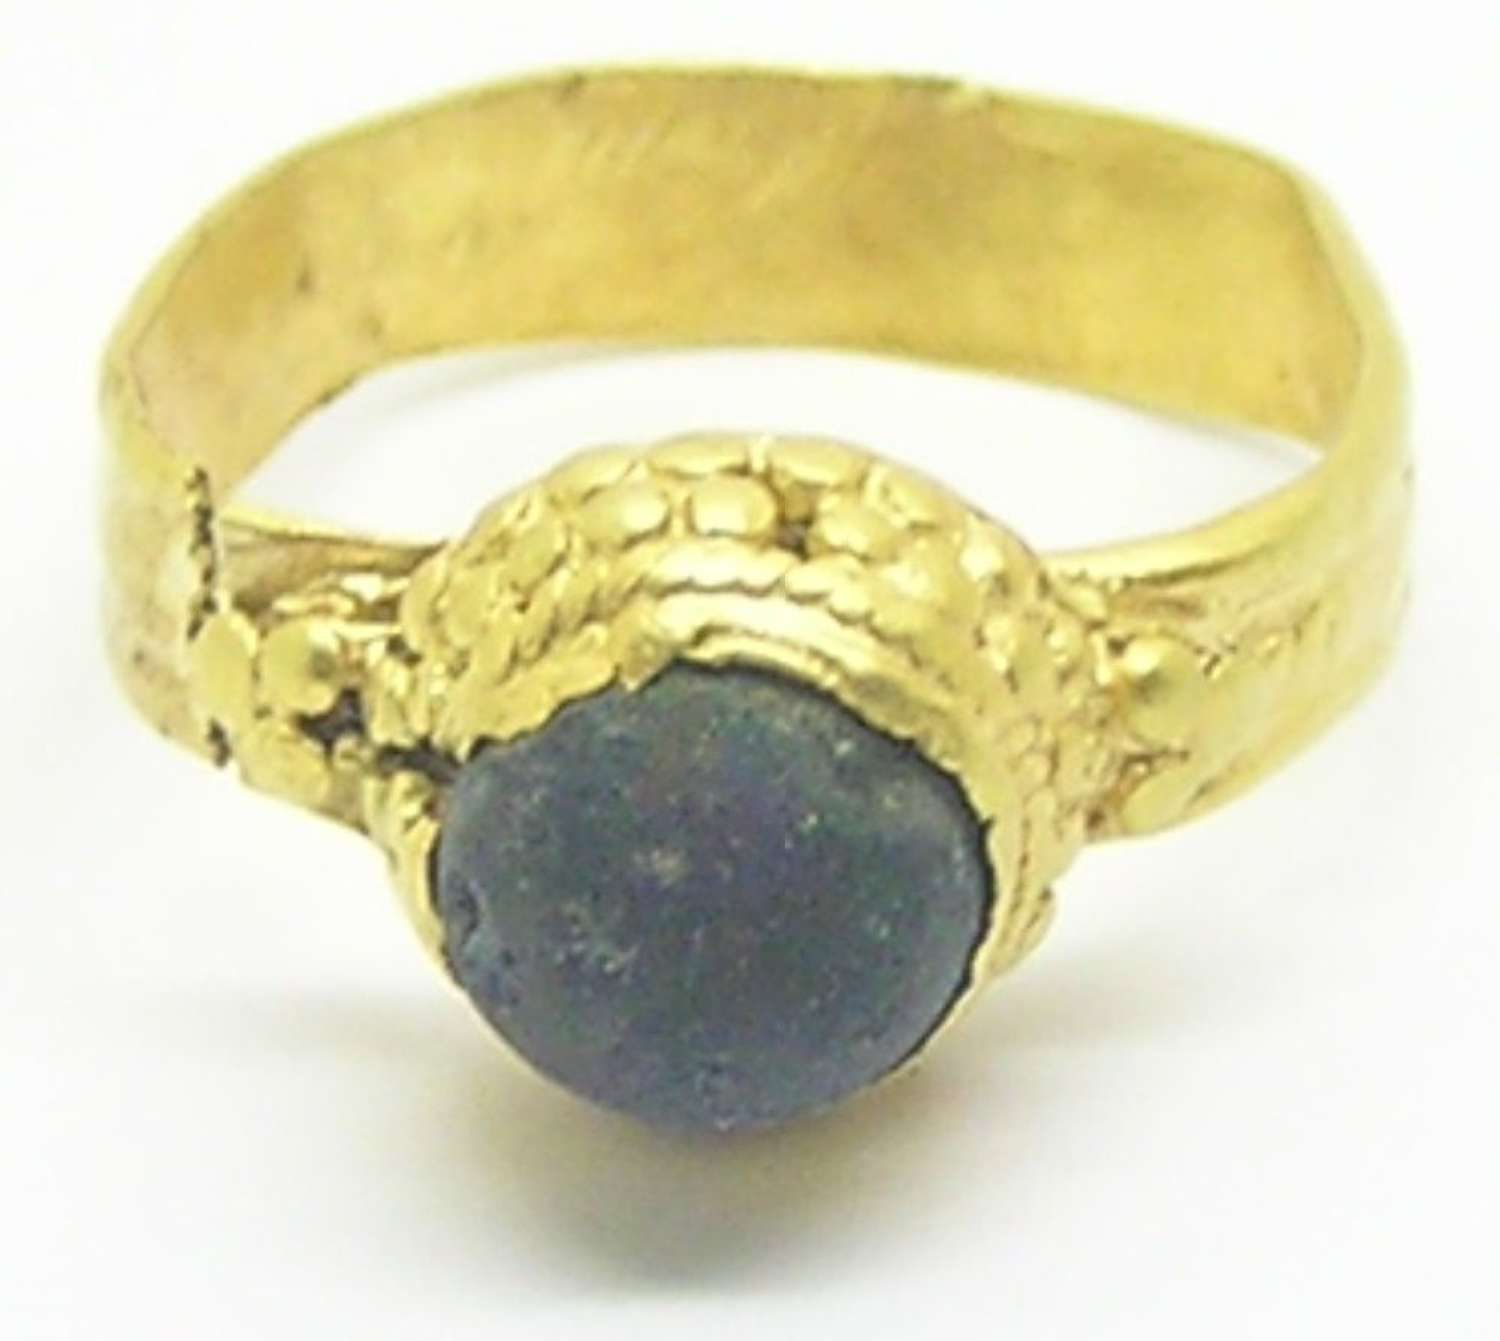 Germanic Migration period gold finger ring